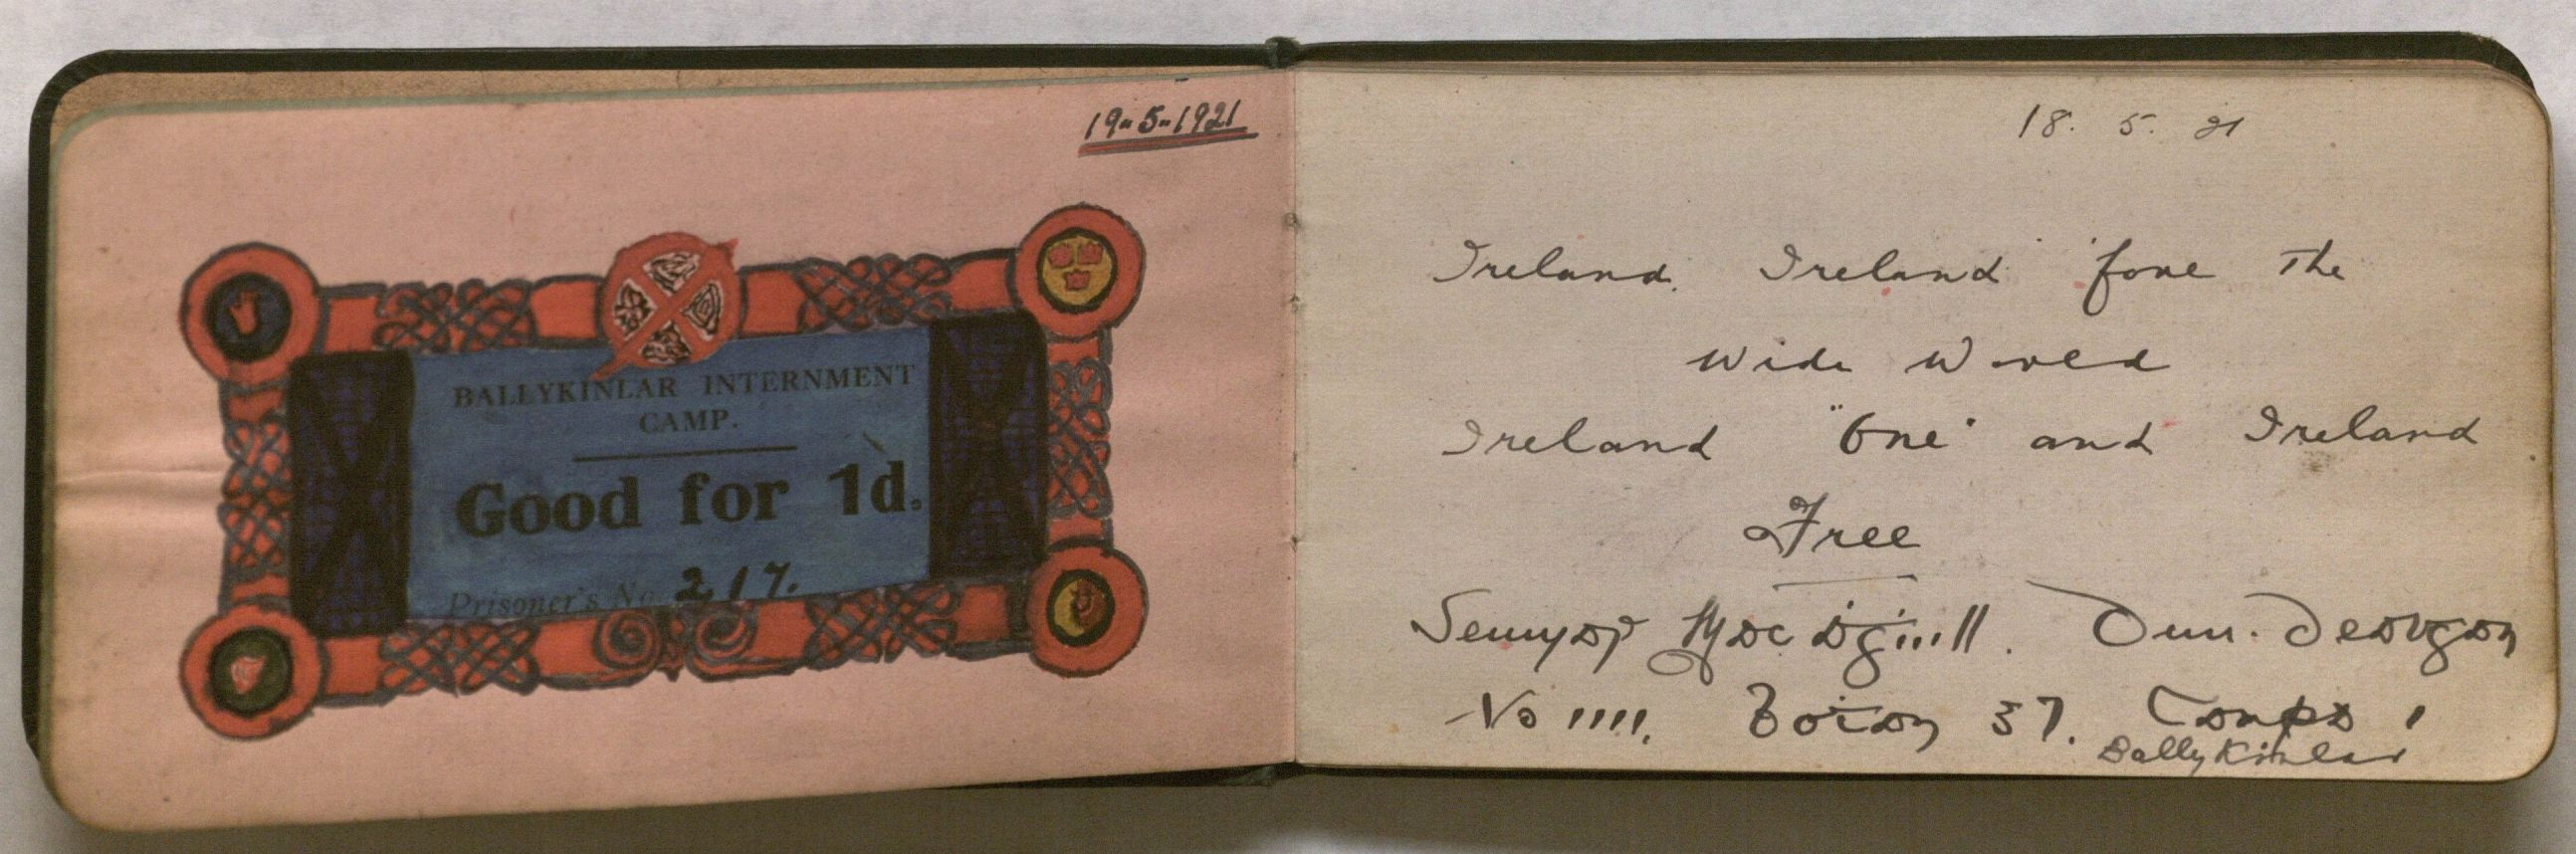 Image of the Autograph Book open to an embellished credit ticket and an inscription bearing a patriotic sentiment.